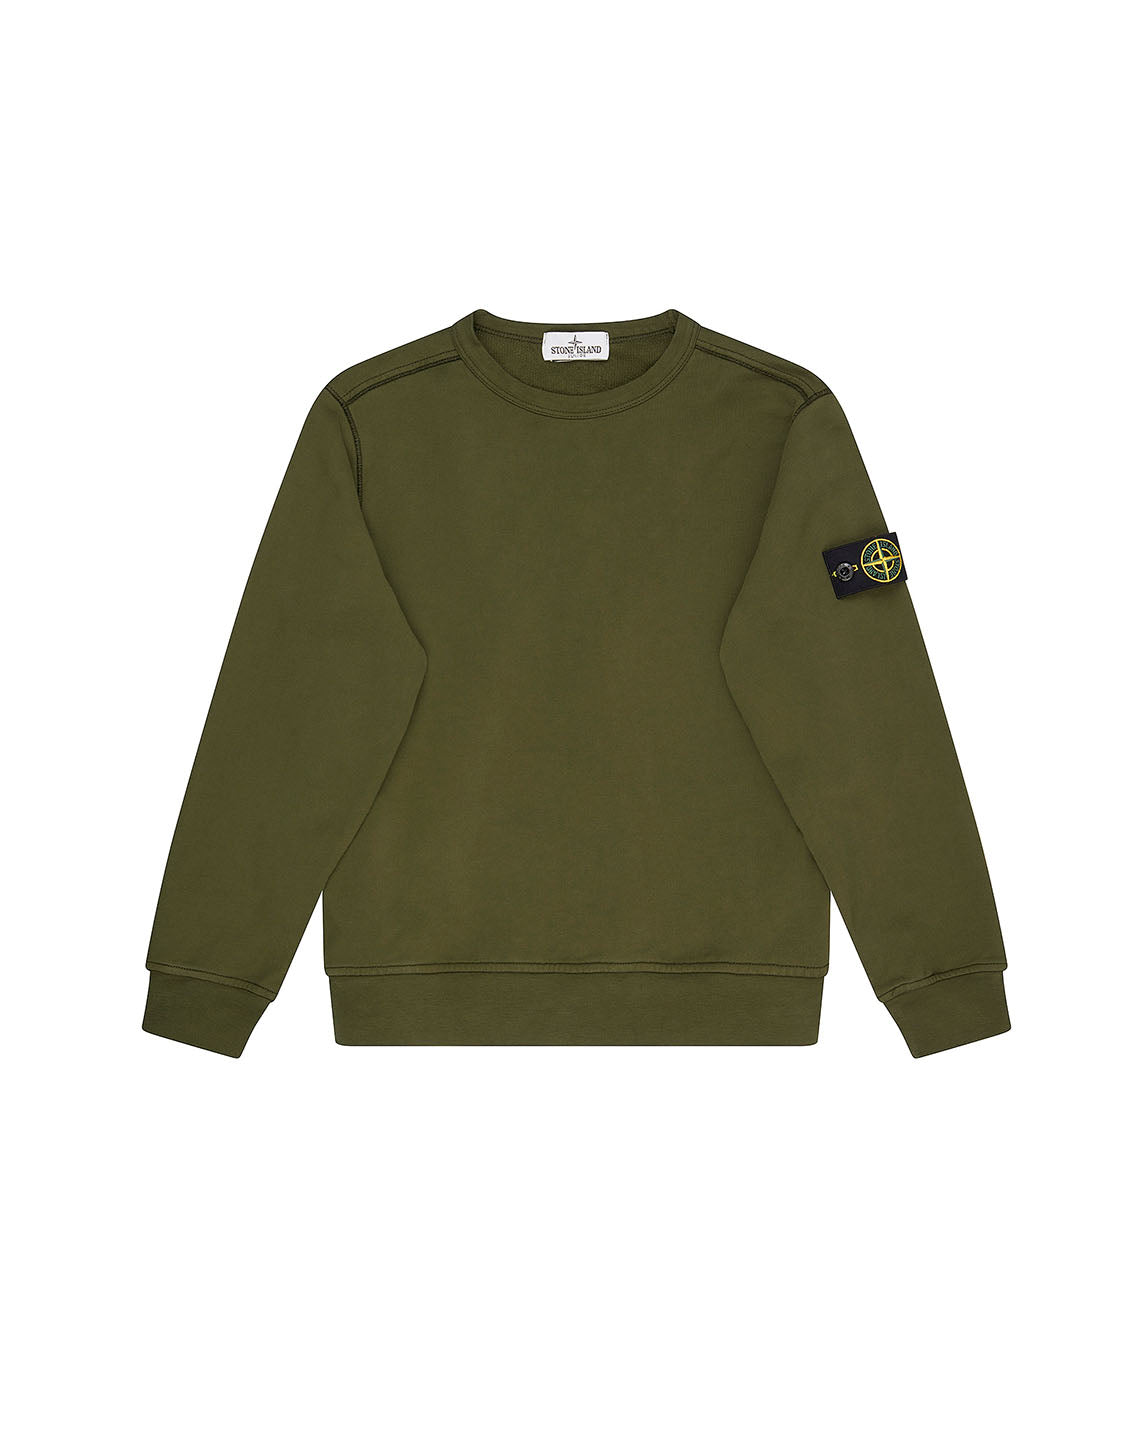 61040 Crewneck Sweatshirt in Military Green